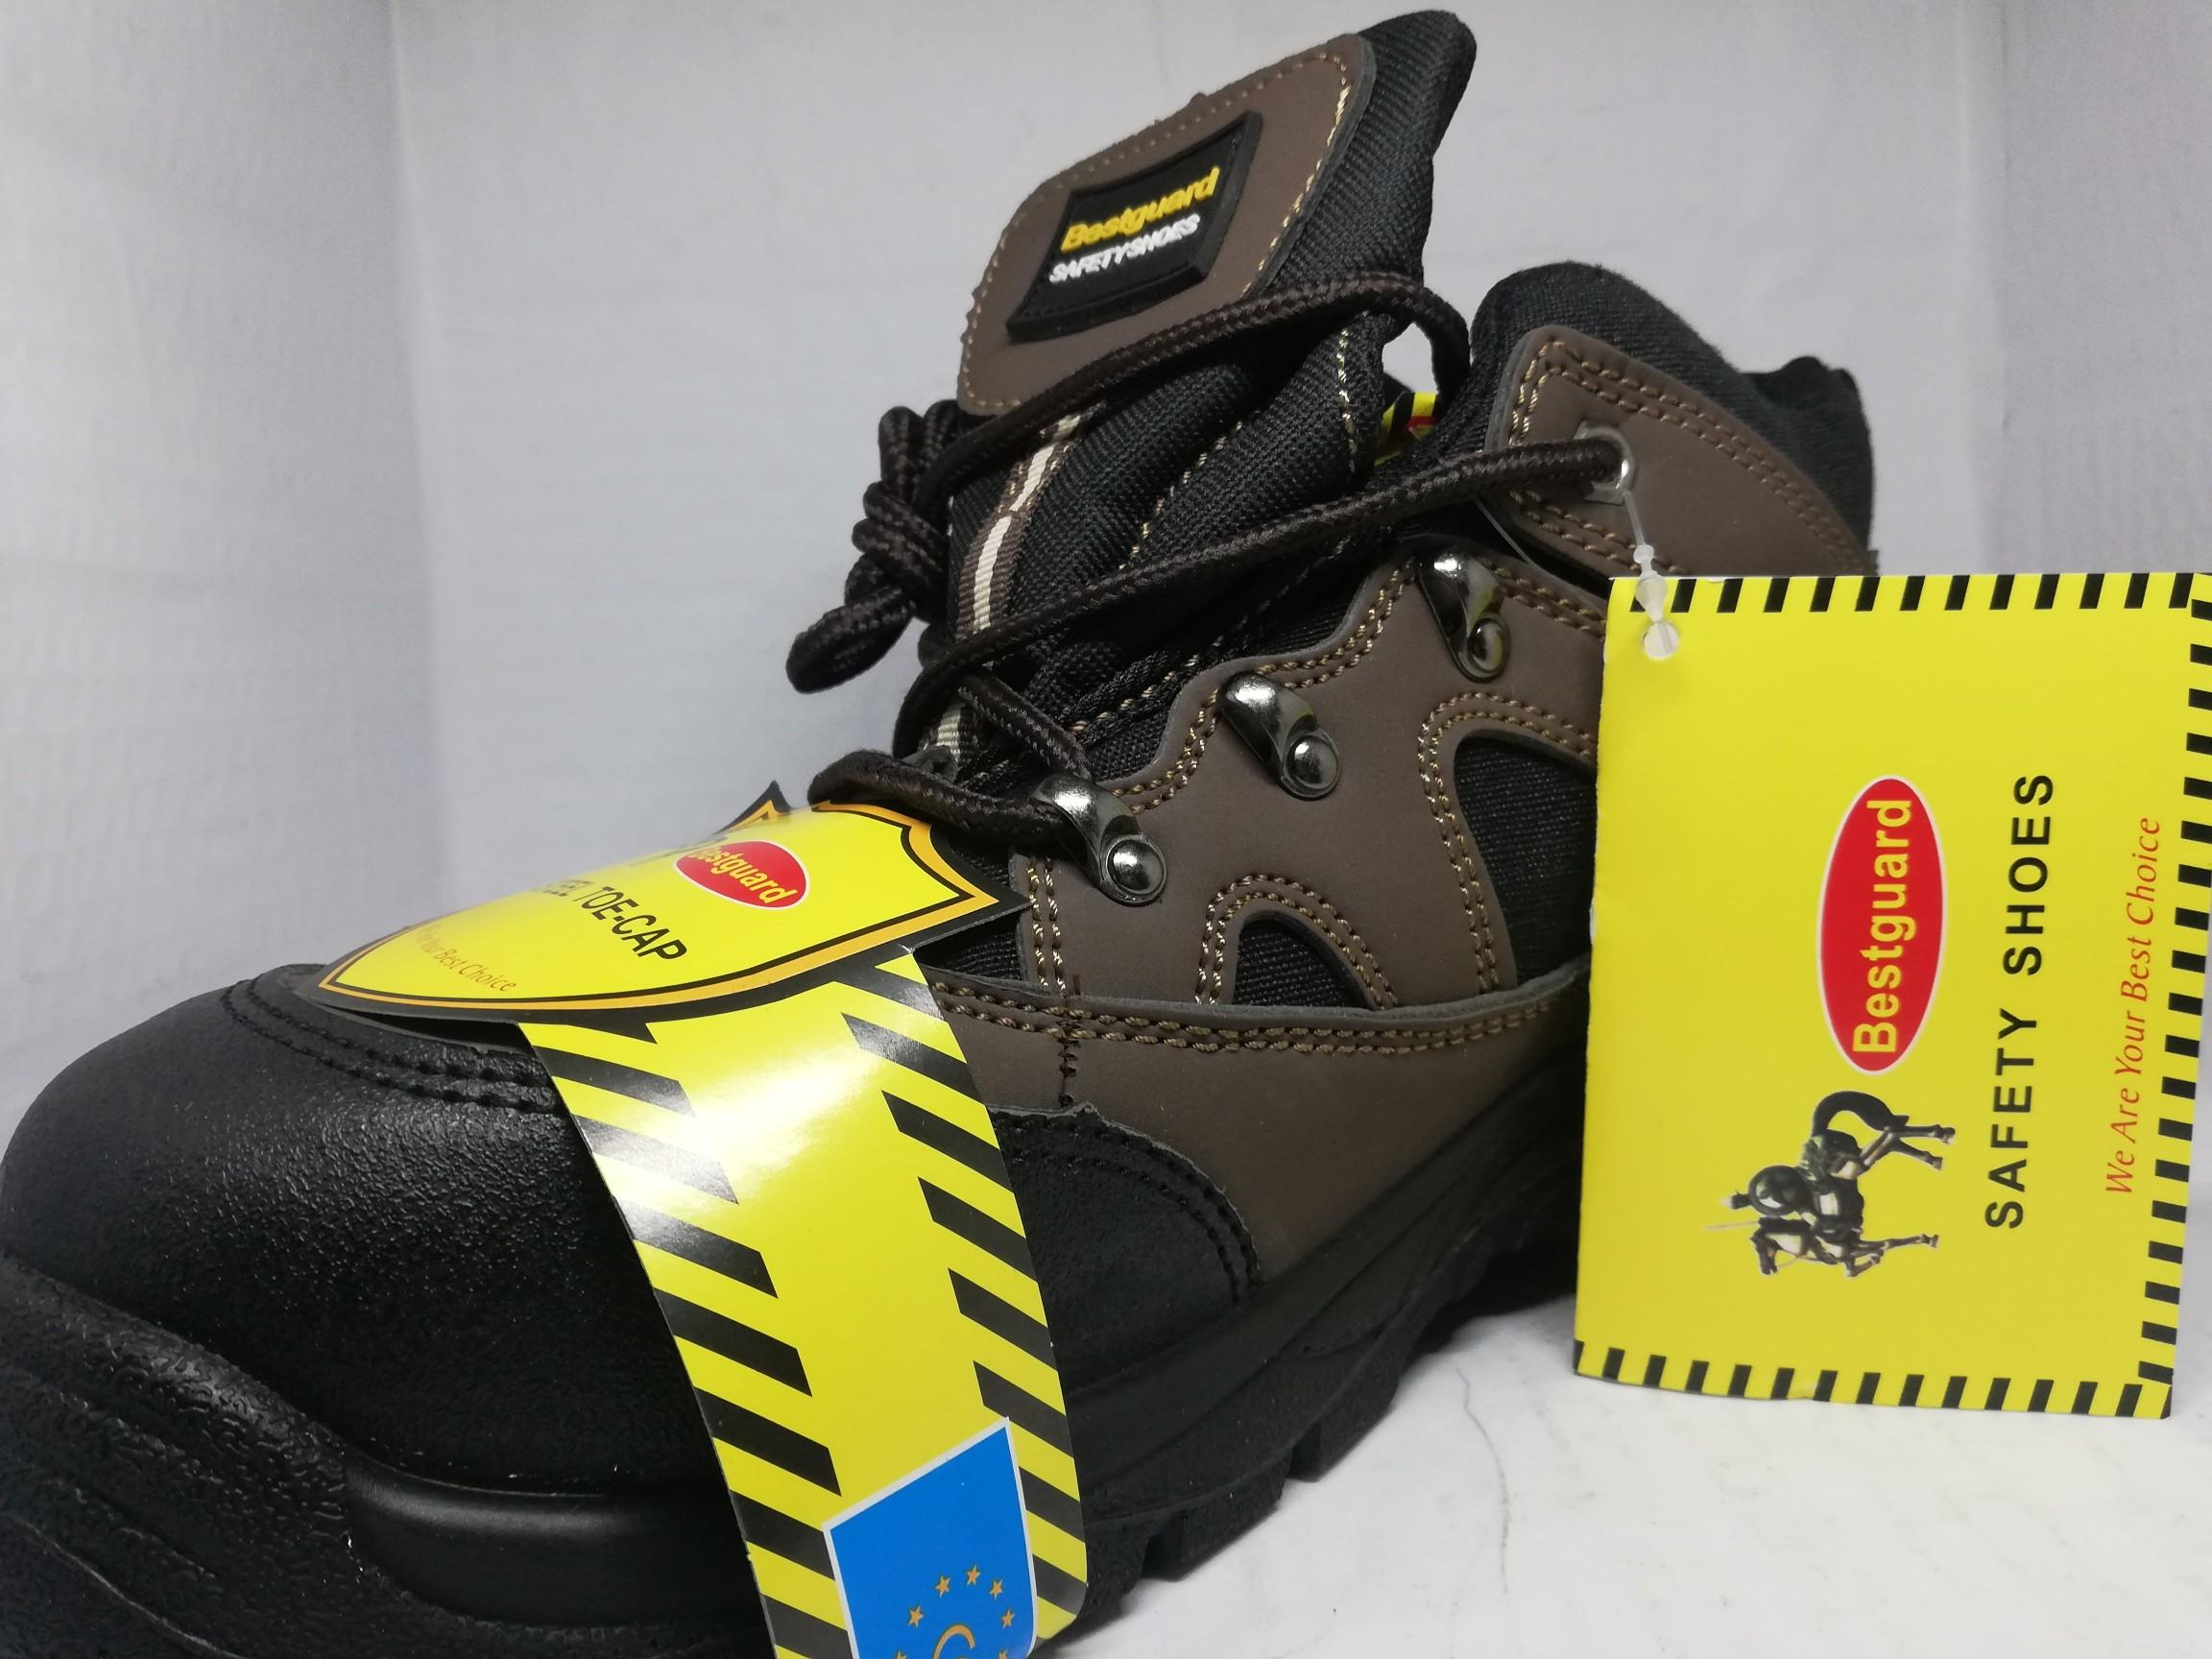 Steel Toe Safety Shoes High Cut (bestguard) By Robby Reseller Online.